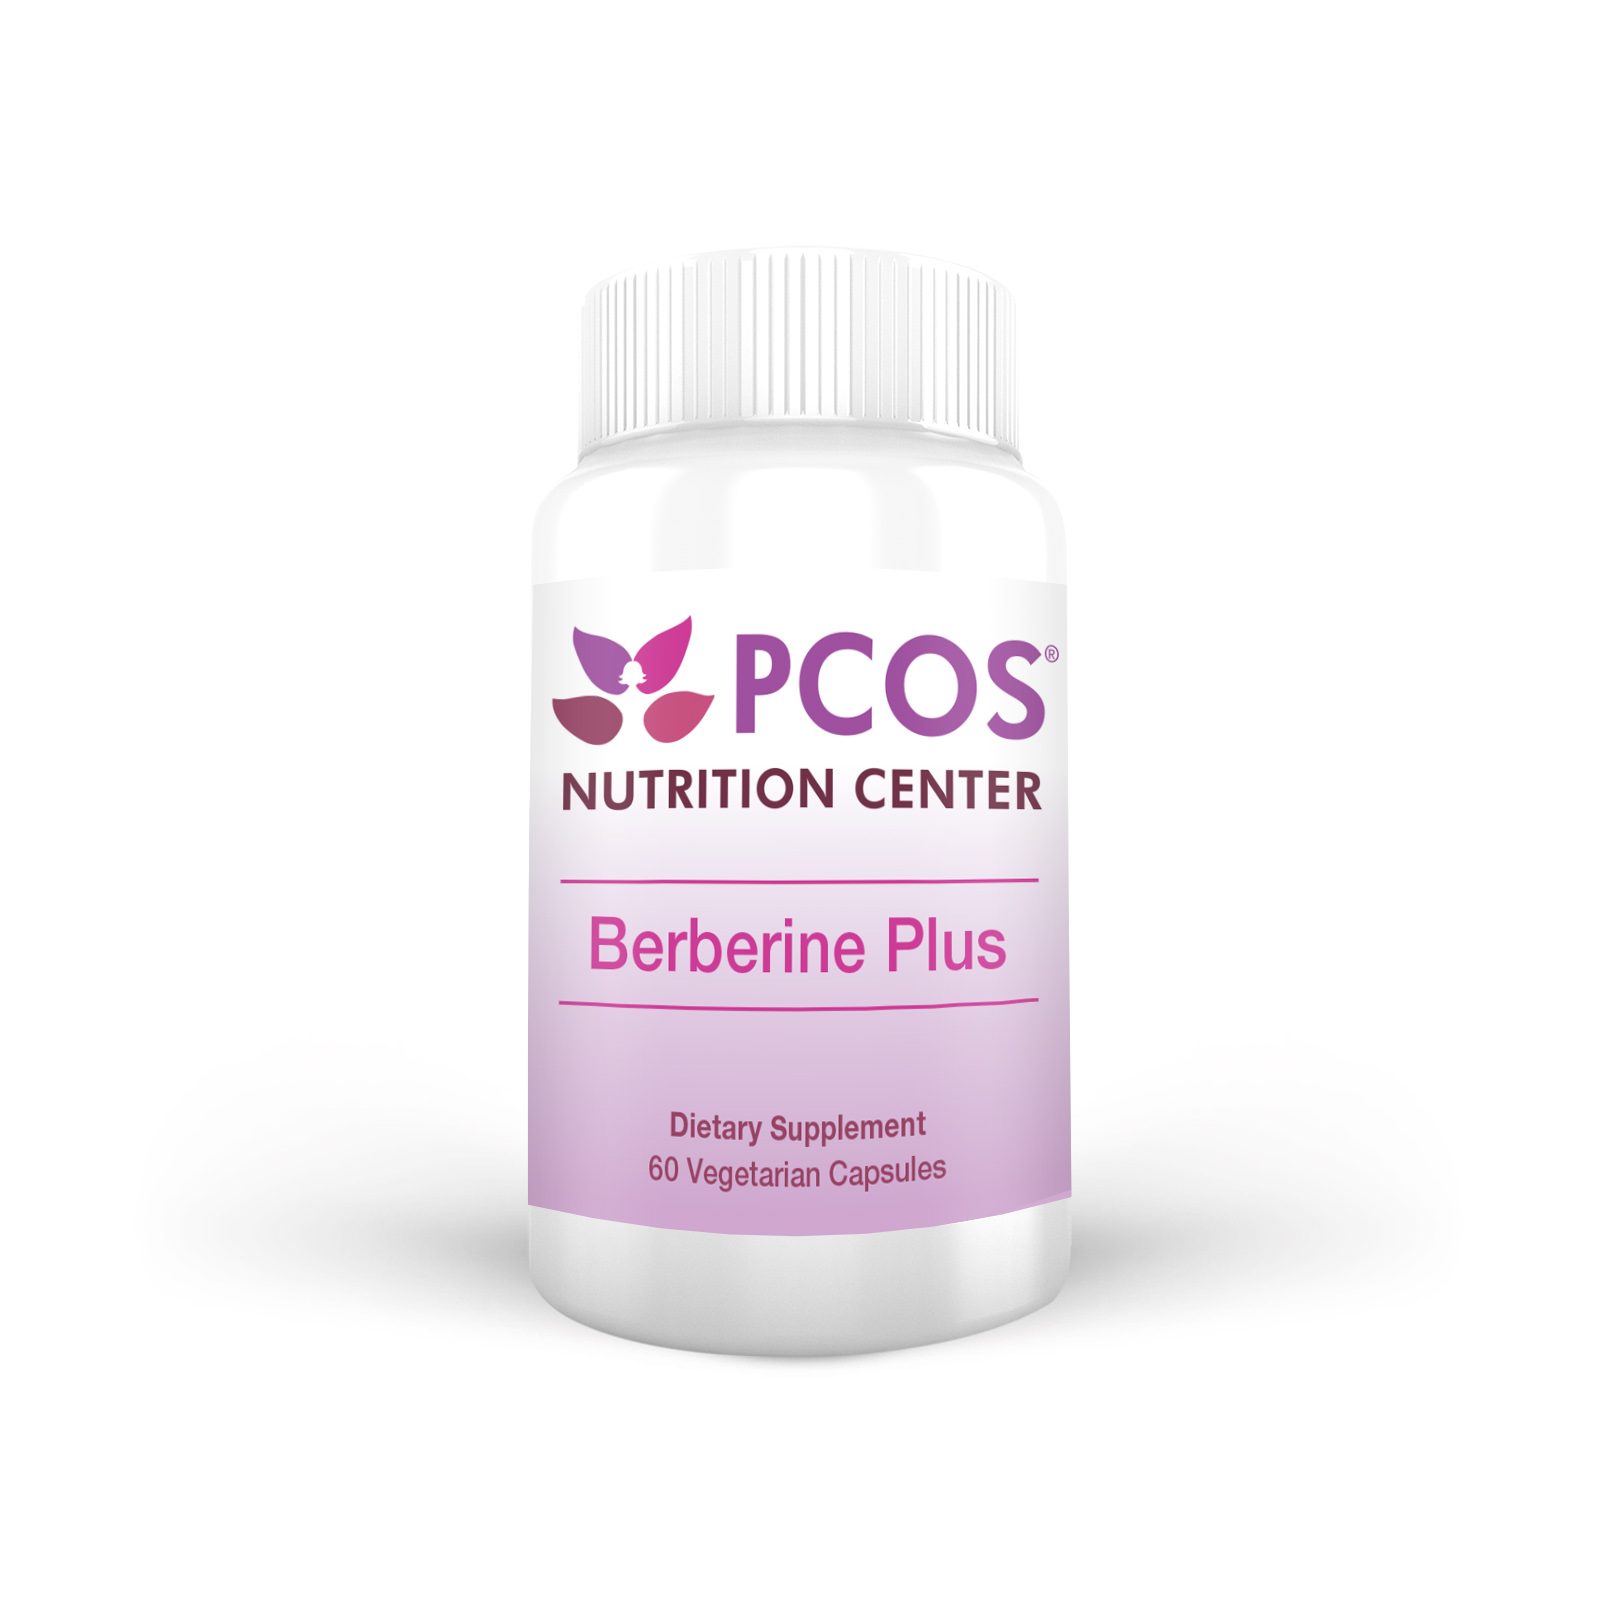 PCOS Nutrition Center Berberine Plus